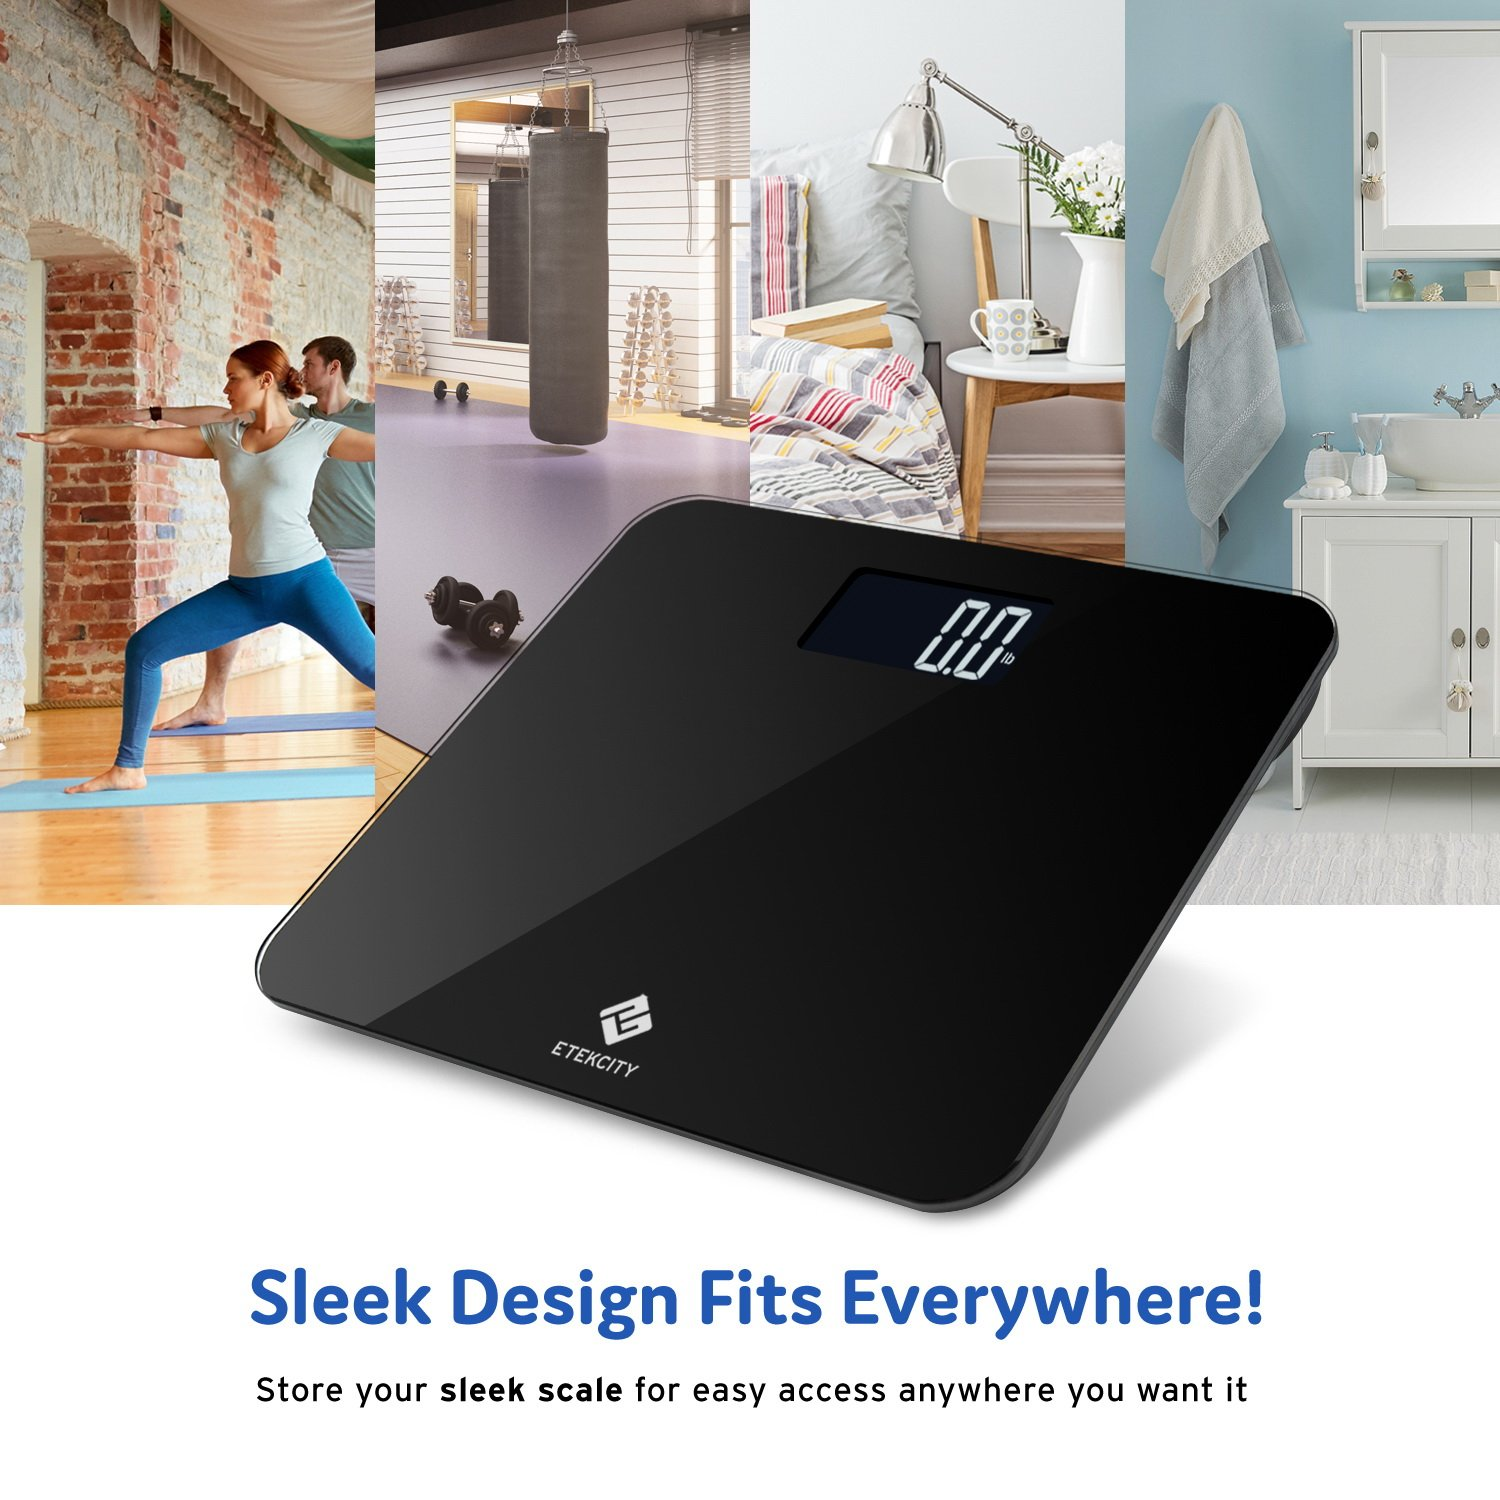 Etekcity Digital Body Weight Bathroom Scale with Step-On Technology, 440 Pounds, Body Tape Measure Included (Black) EB441OB by Etekcity (Image #7)